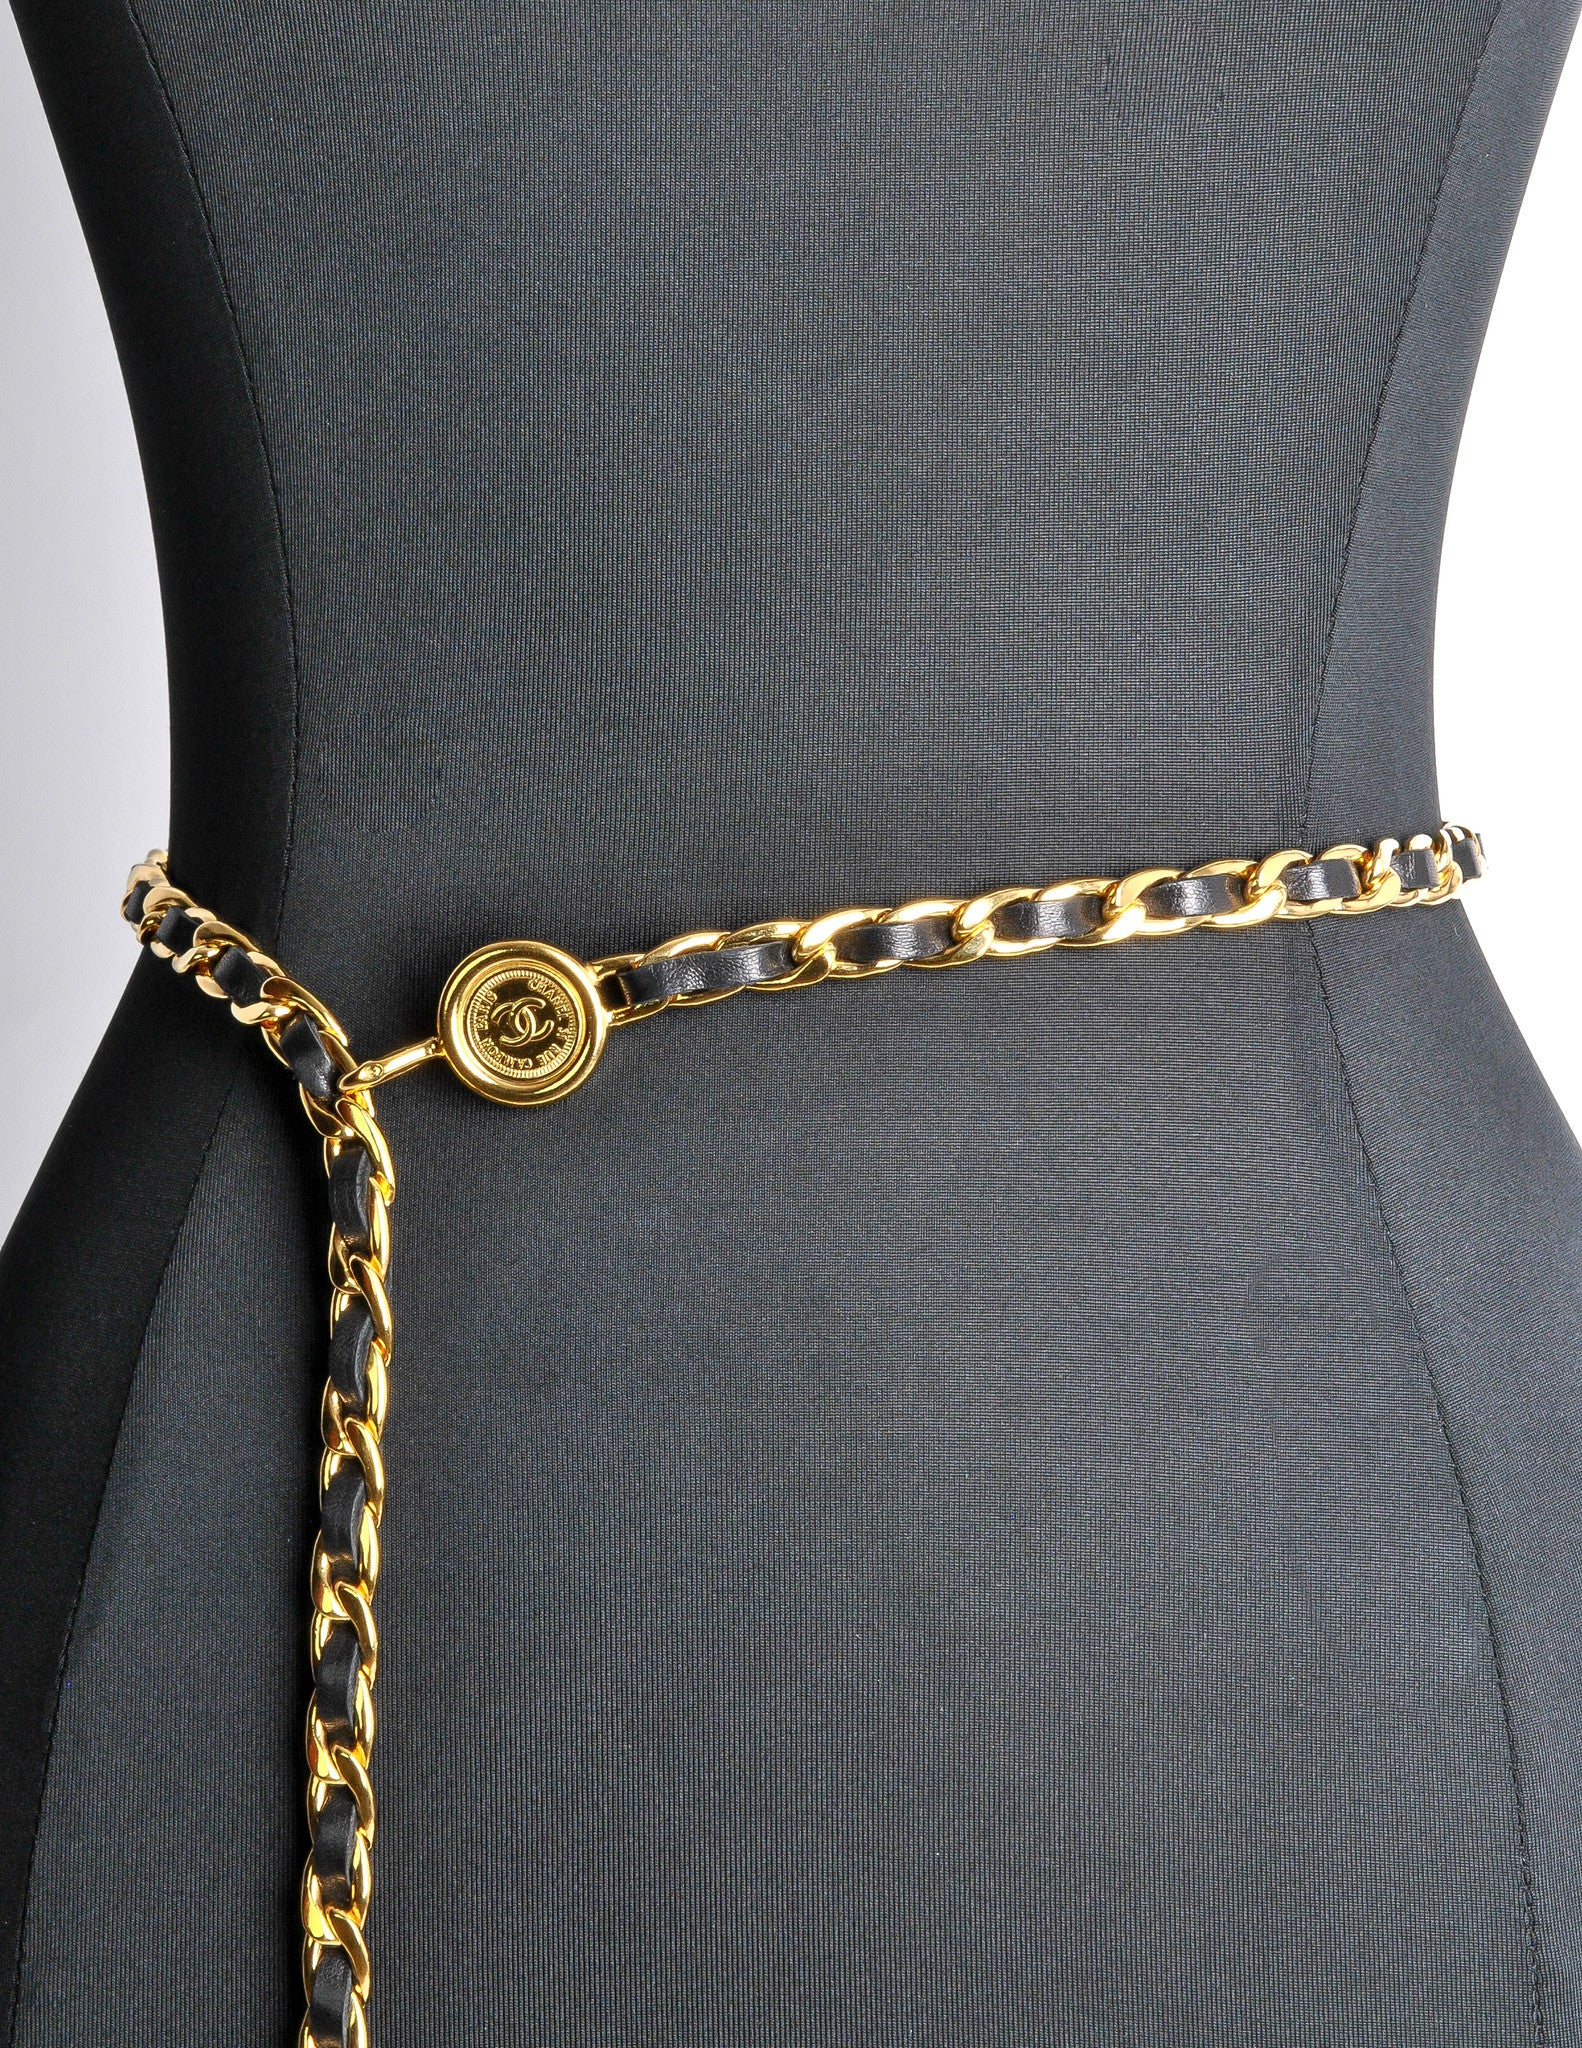 Chanel Vintage Black Gold Leather Chain Belt From